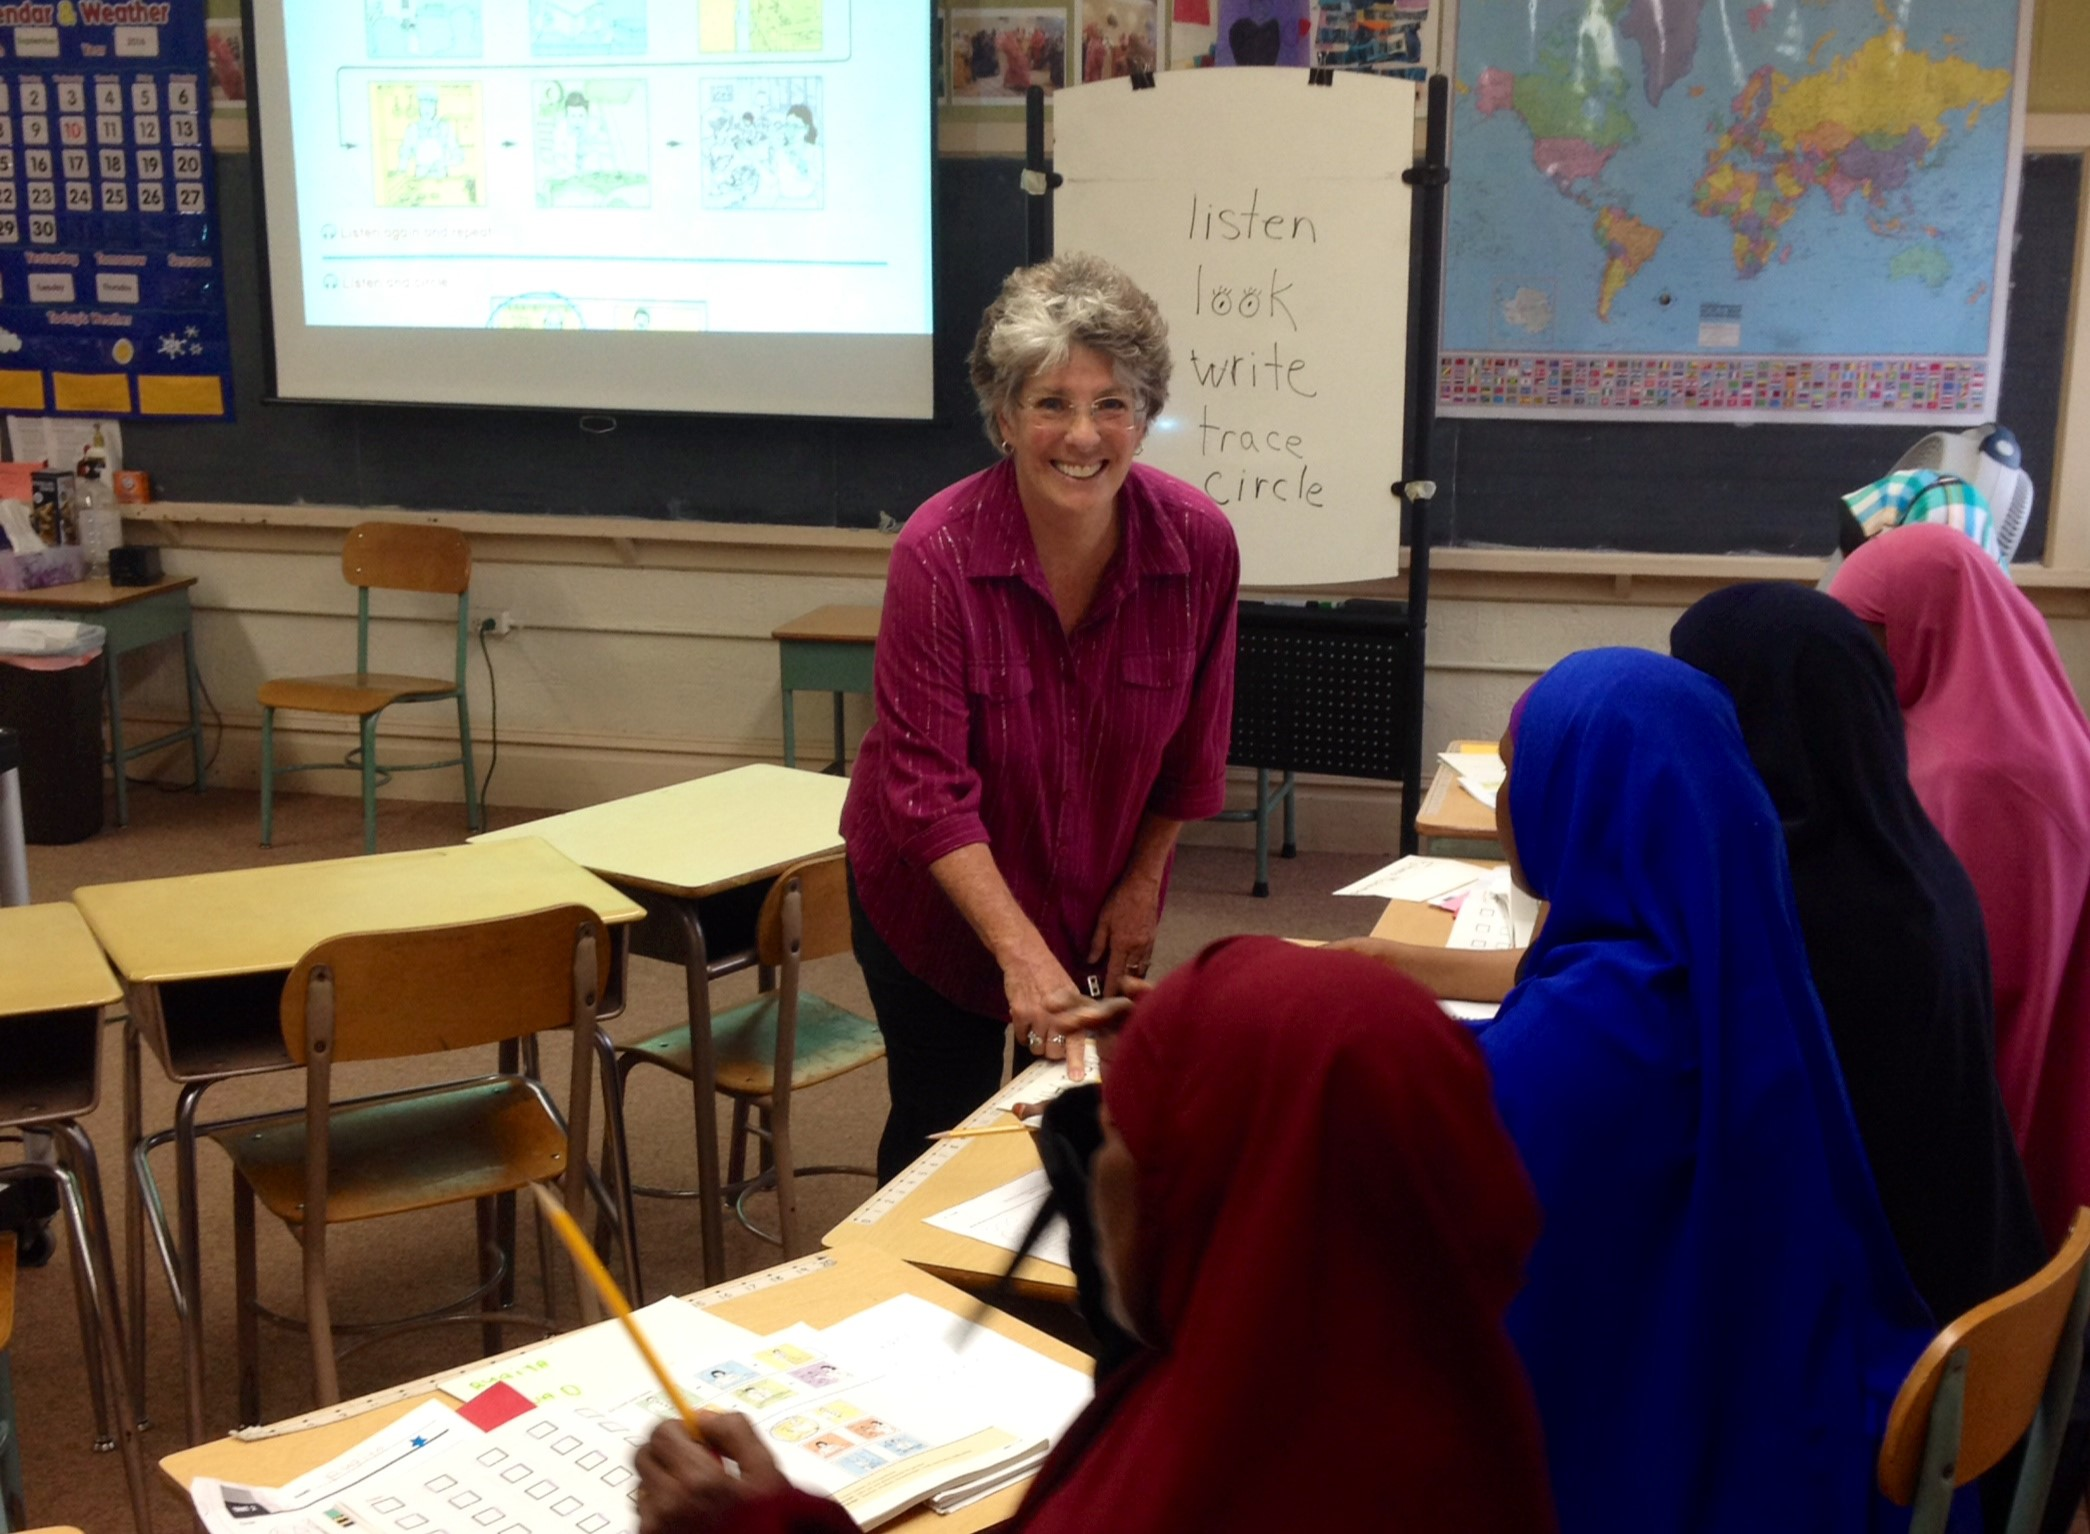 RSVP Volunteer, Nancy, working with students in a classroom.